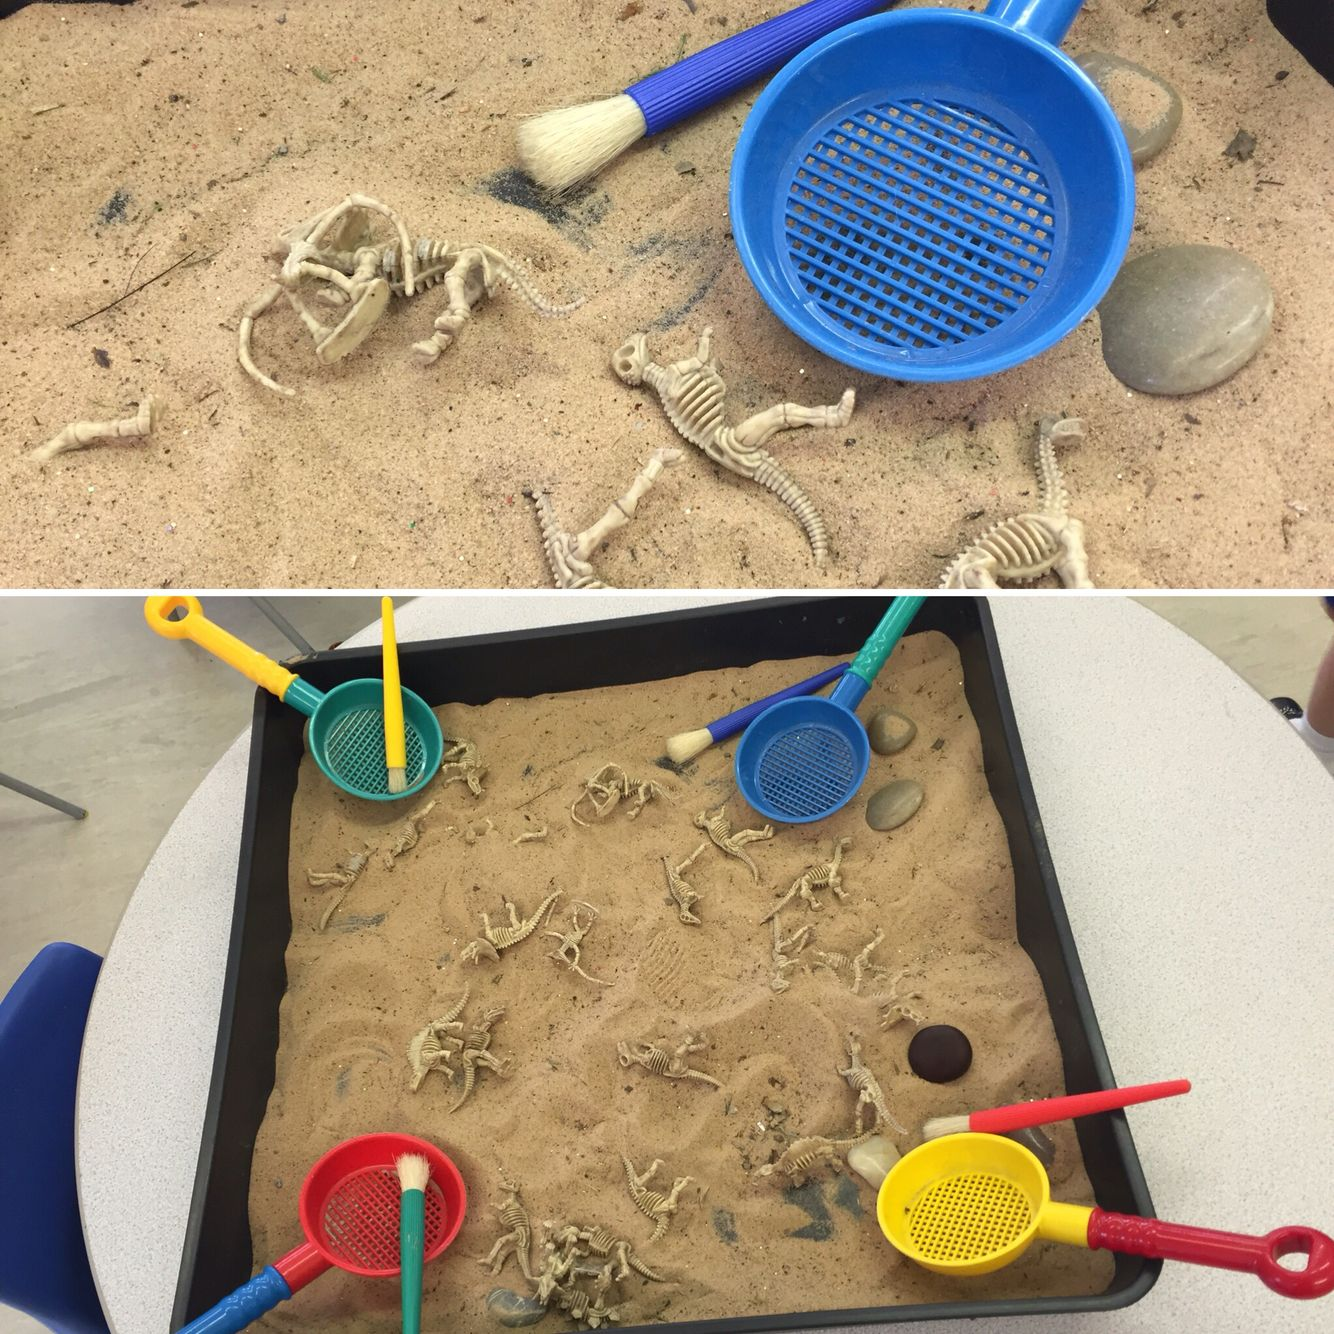 Dinosaur excavation in sand. Use sieves, brushes and dinosaur skeletons to investigate and discover!